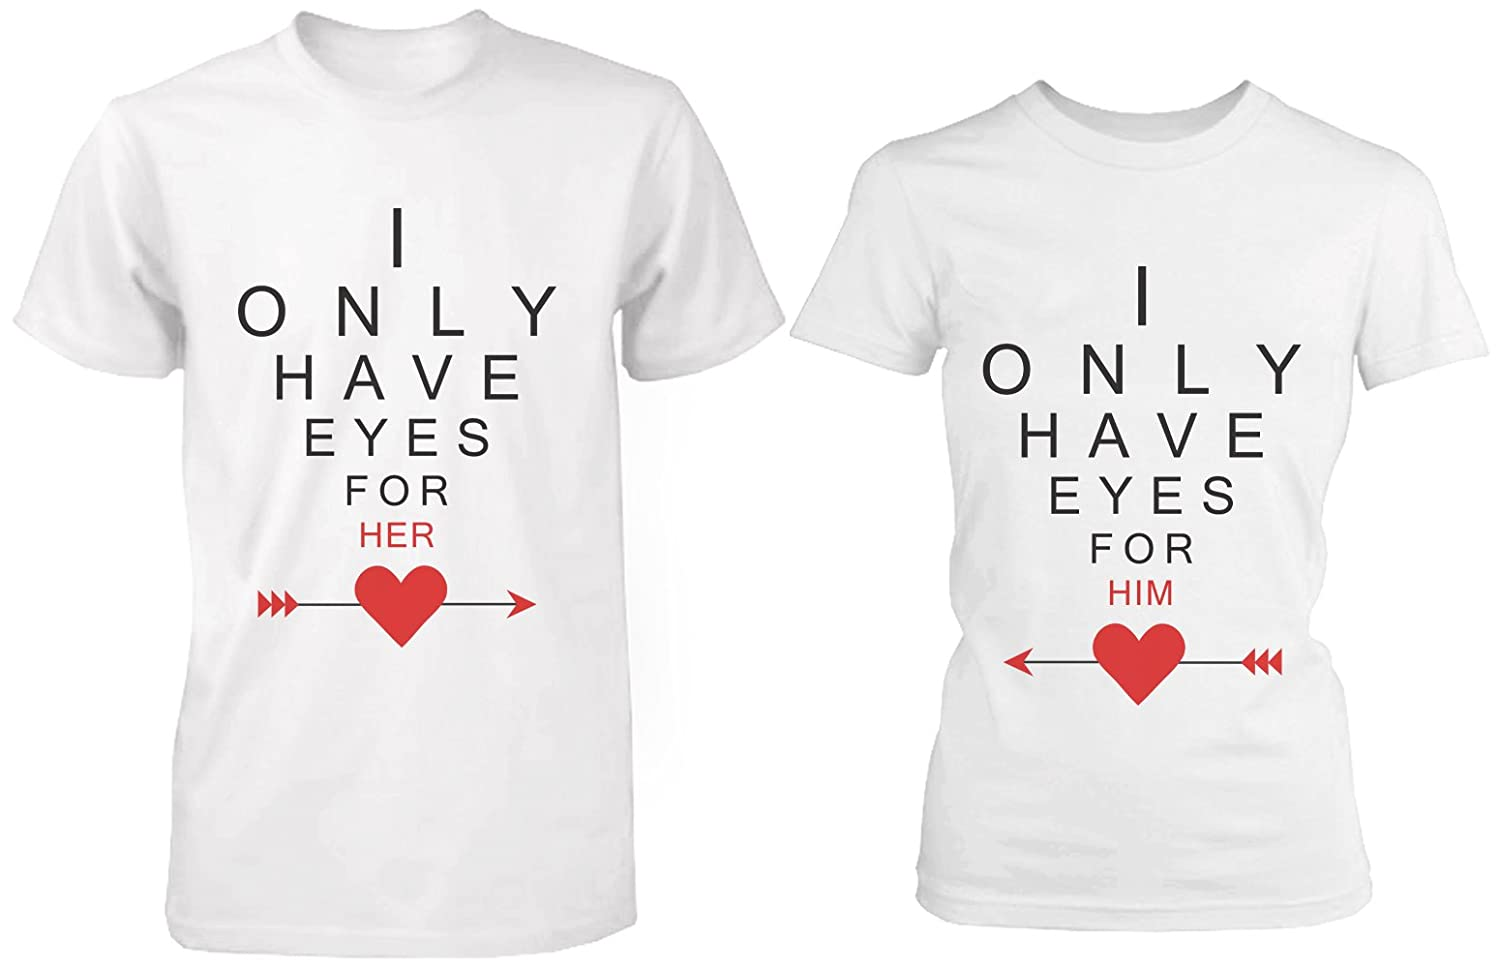 Gift for Him Love, LOVE Shirts for Couples, Gift for Him, Gift for Husband, Matching Shirts for Couples, Love Couples Shirts, UNISEX